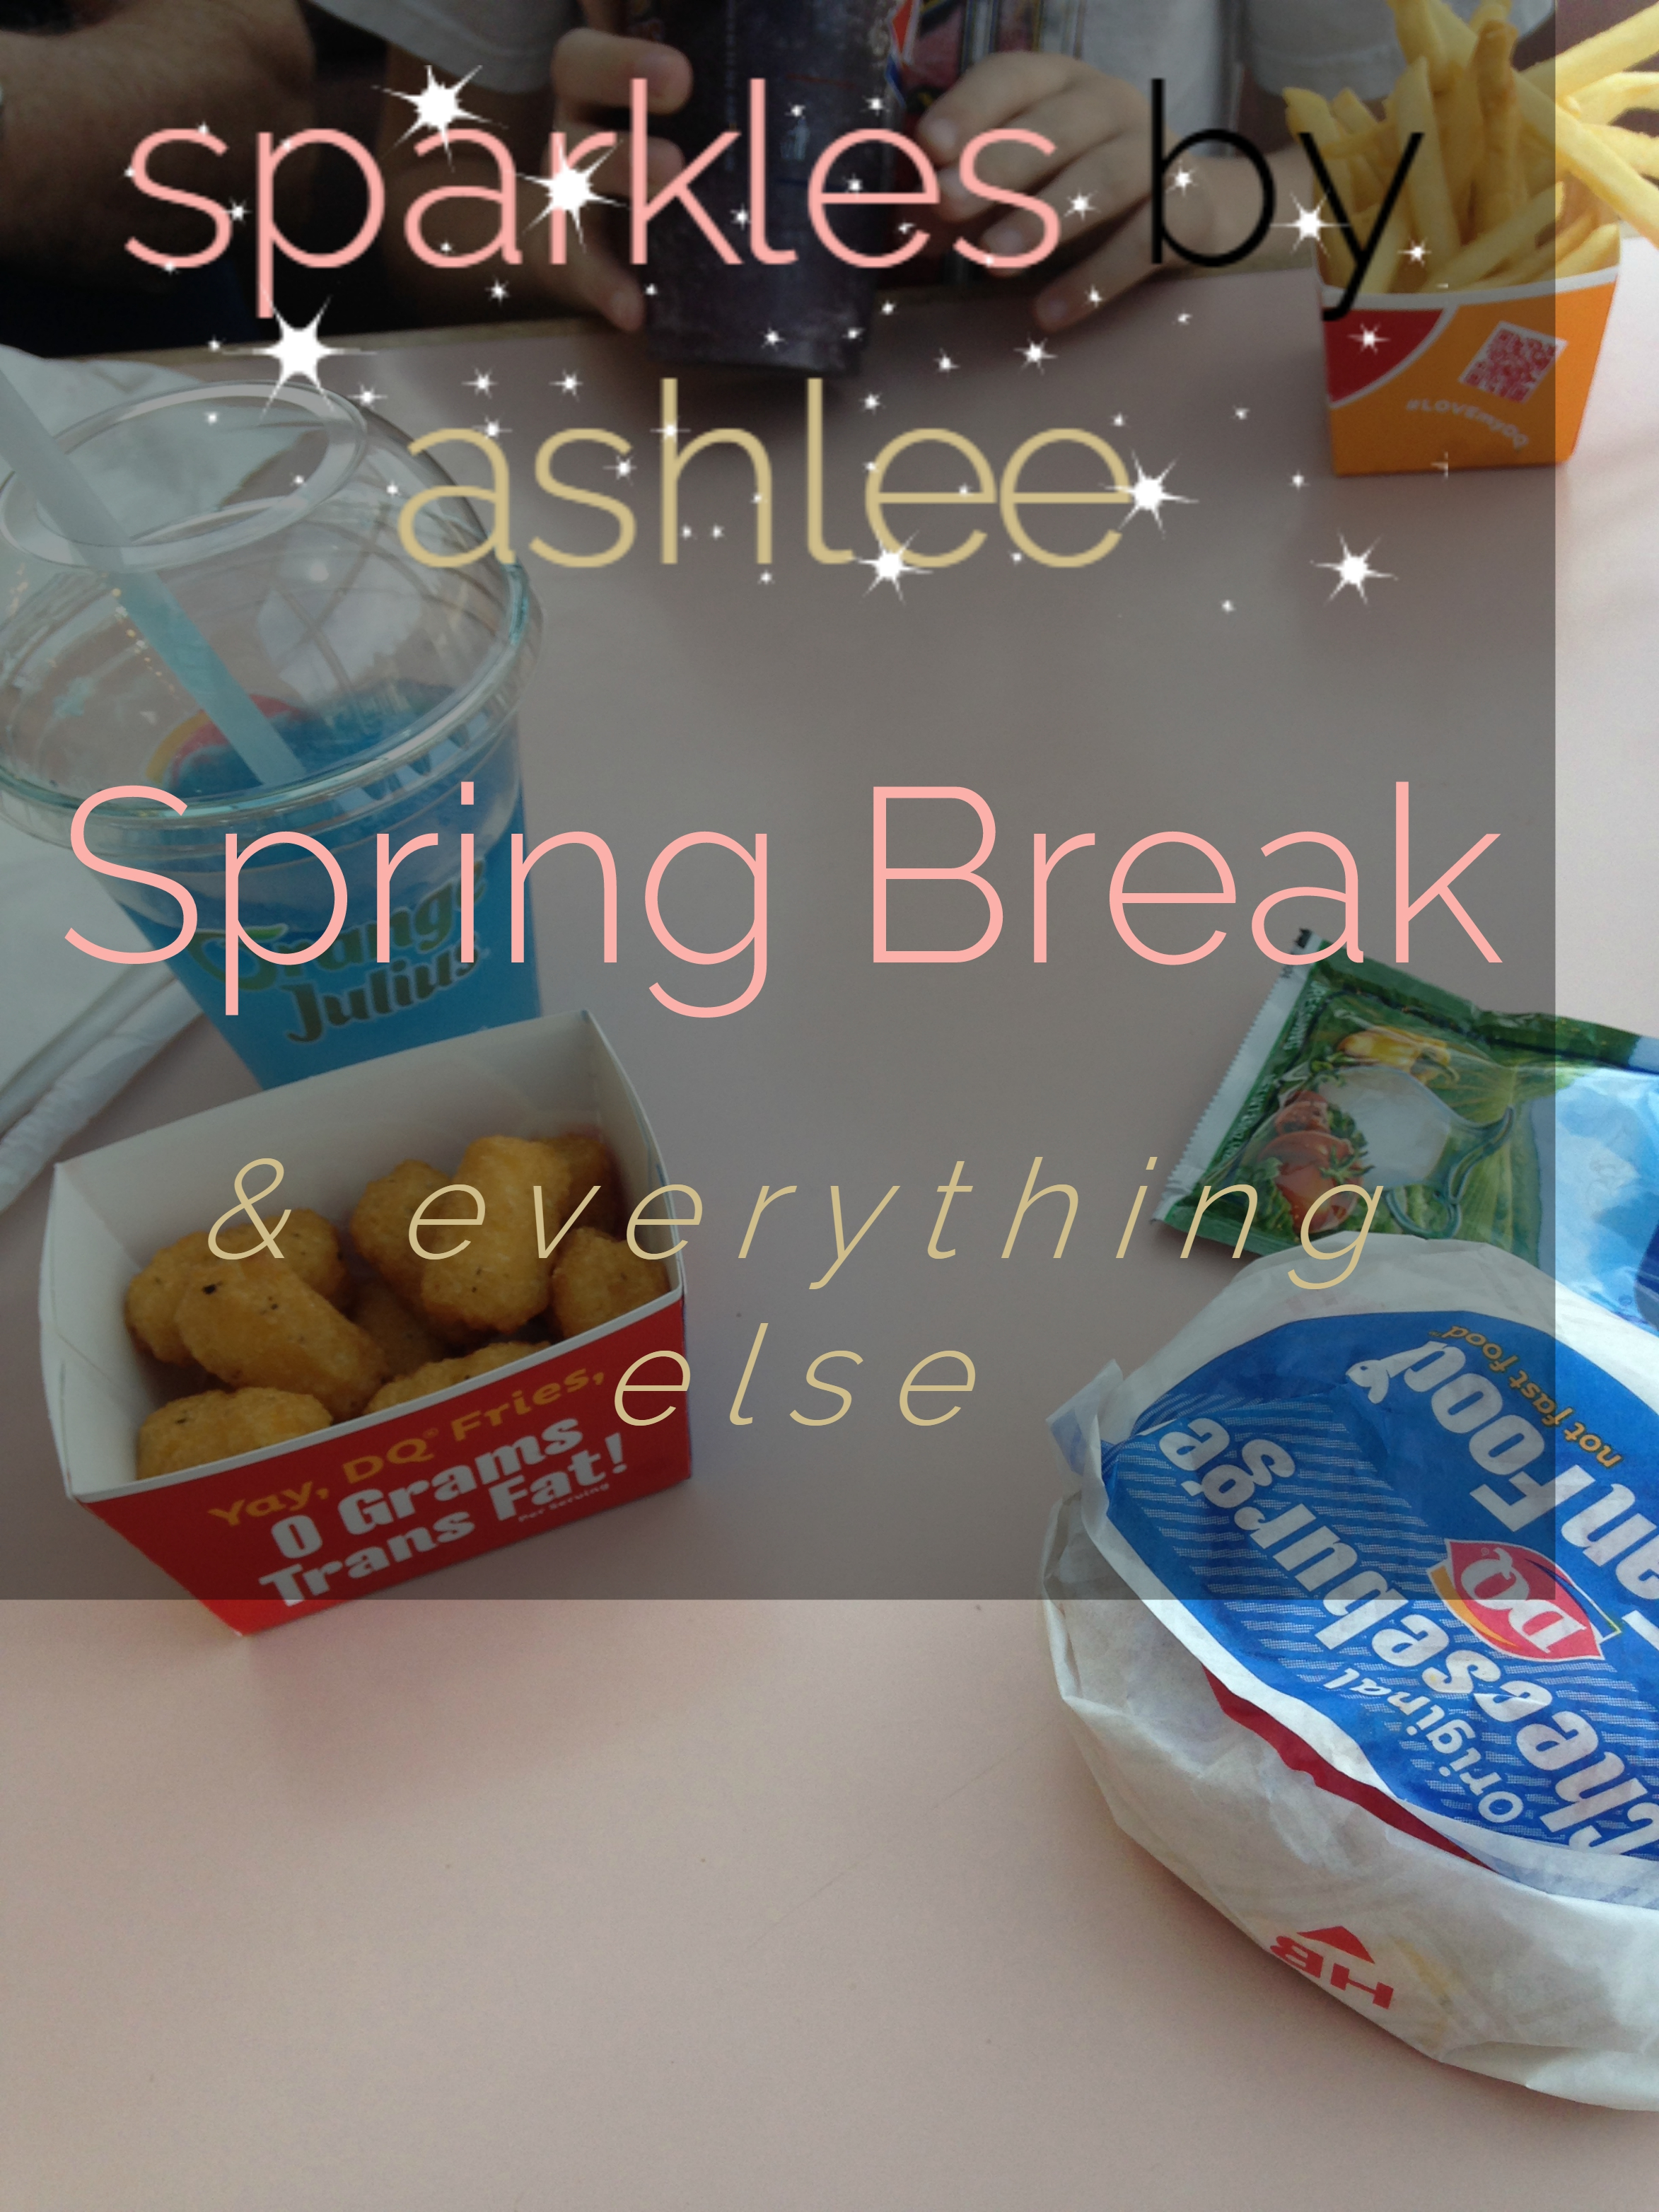 Lets-Catch-Up-Spring-Break-Sparkles-by-Ashlee.jpg